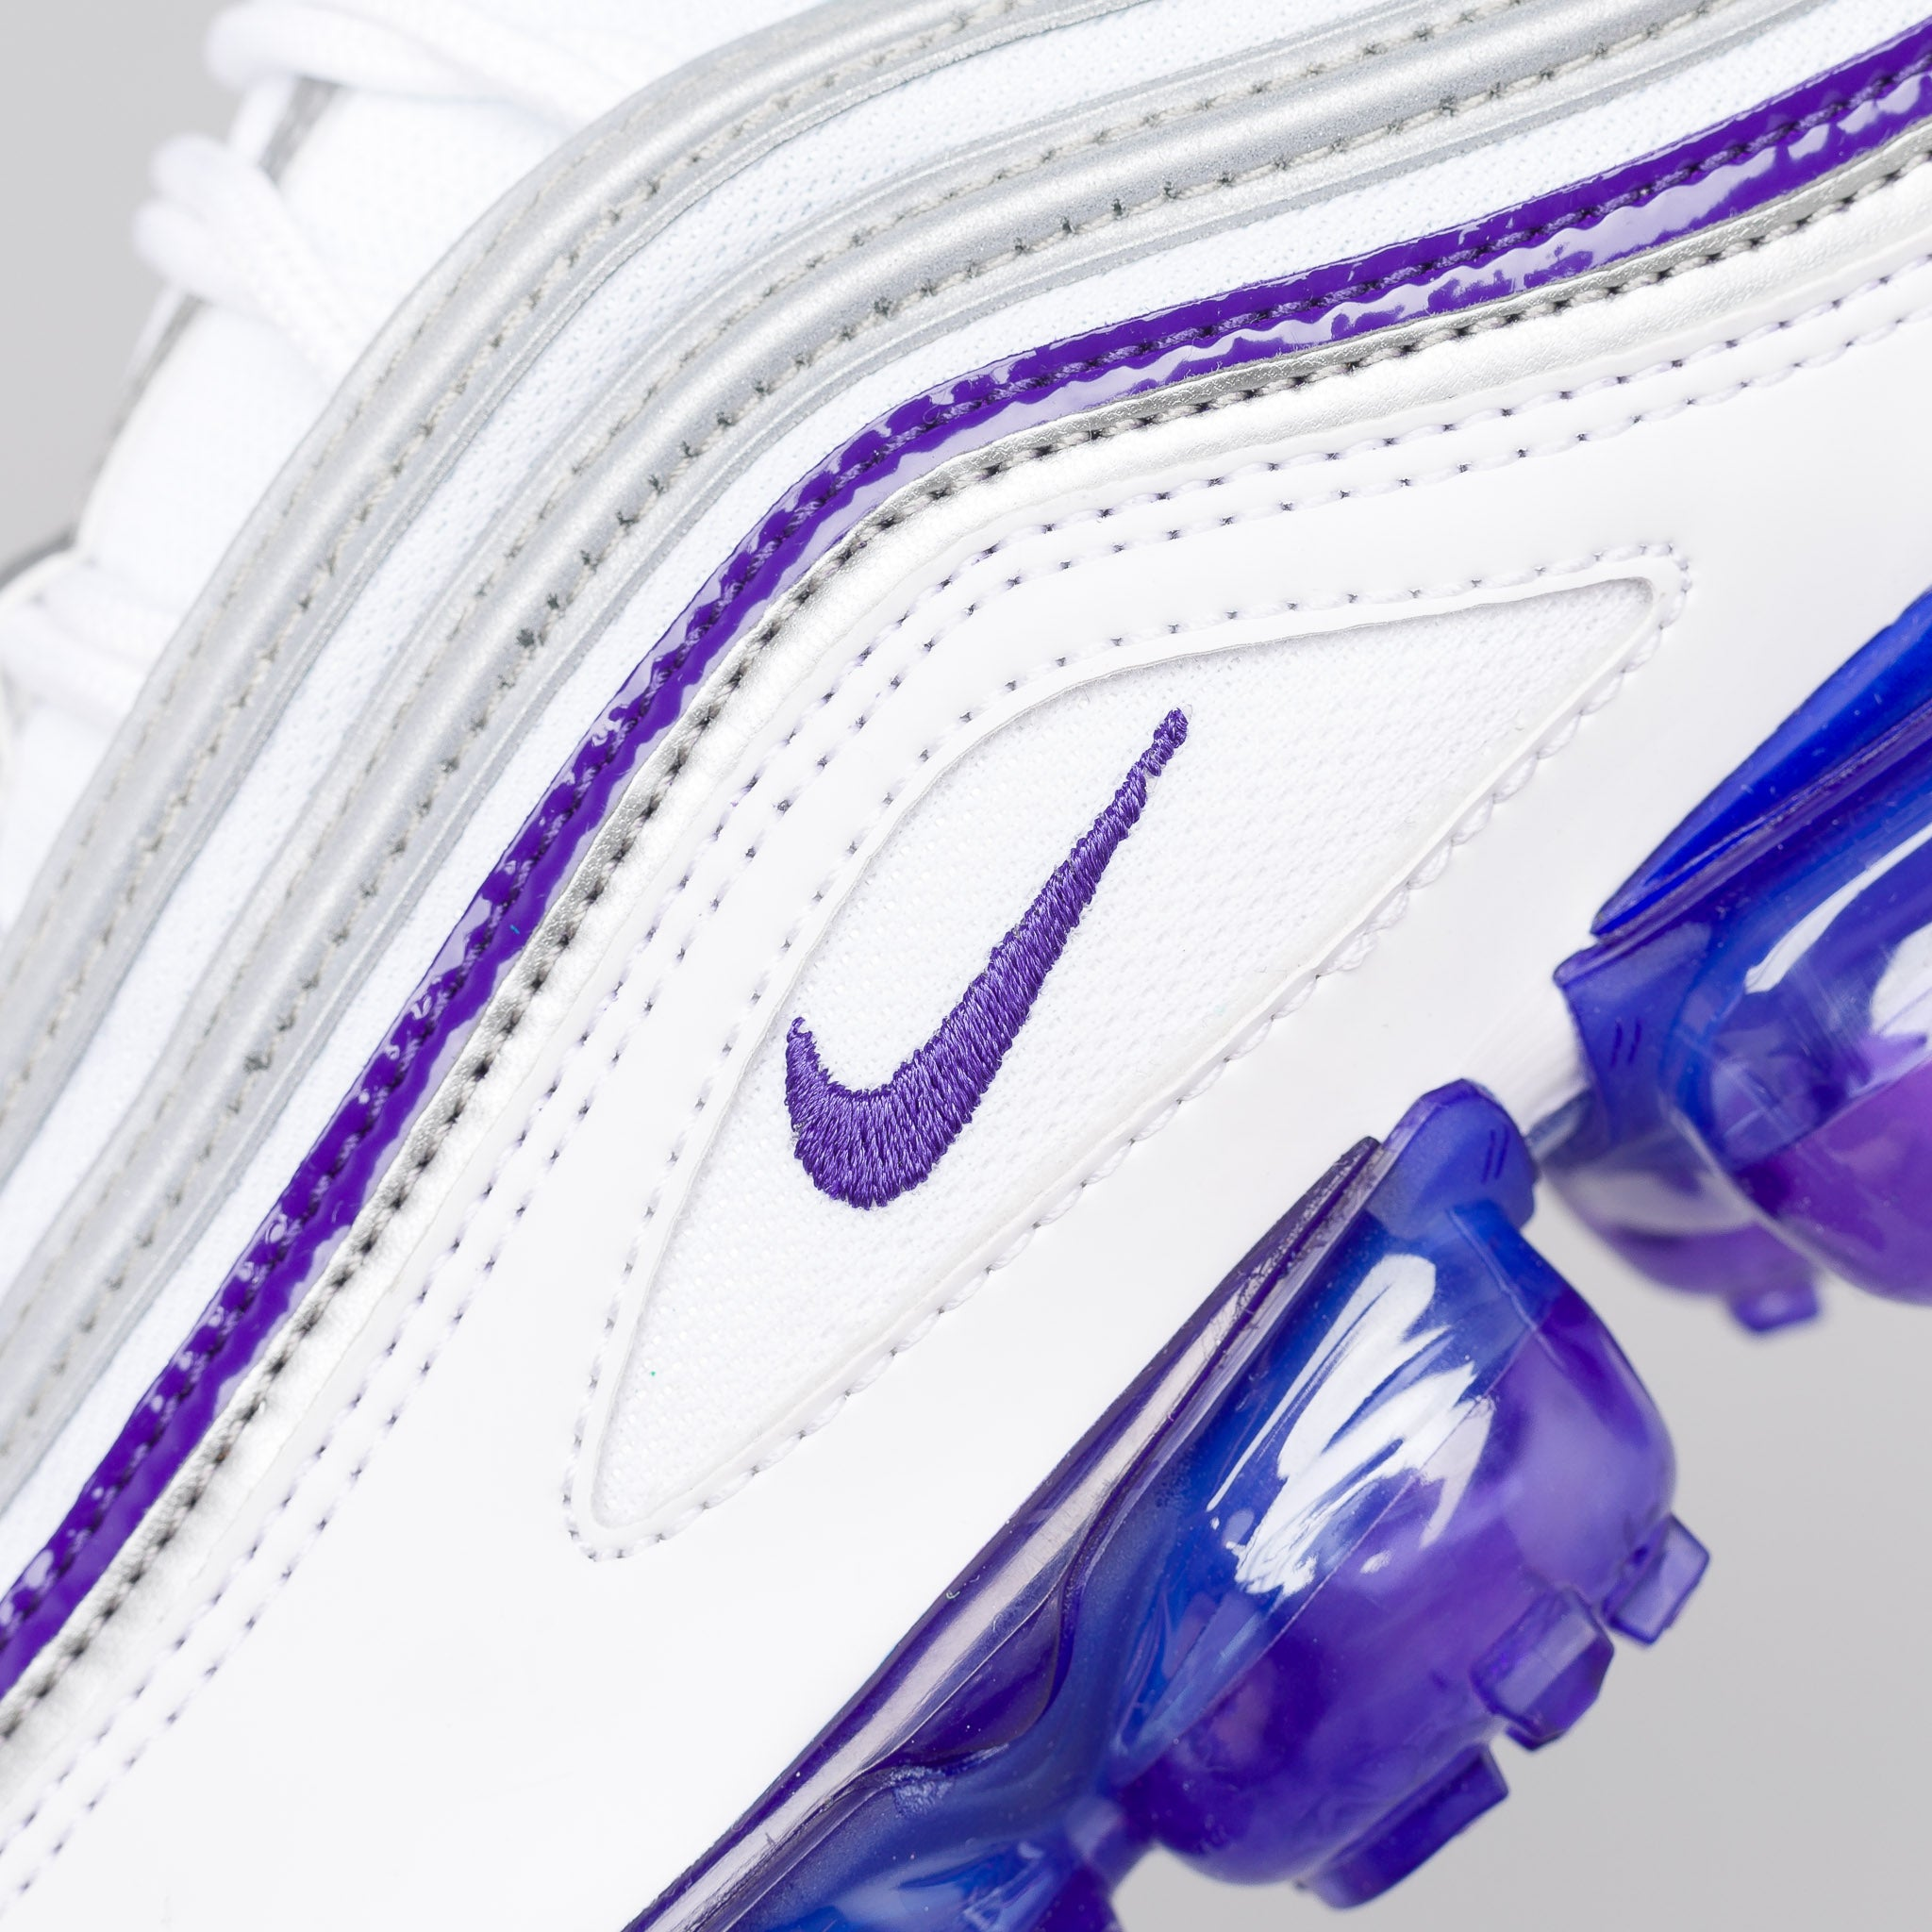 Air Vapormax 97 in White/Aqua/Purple